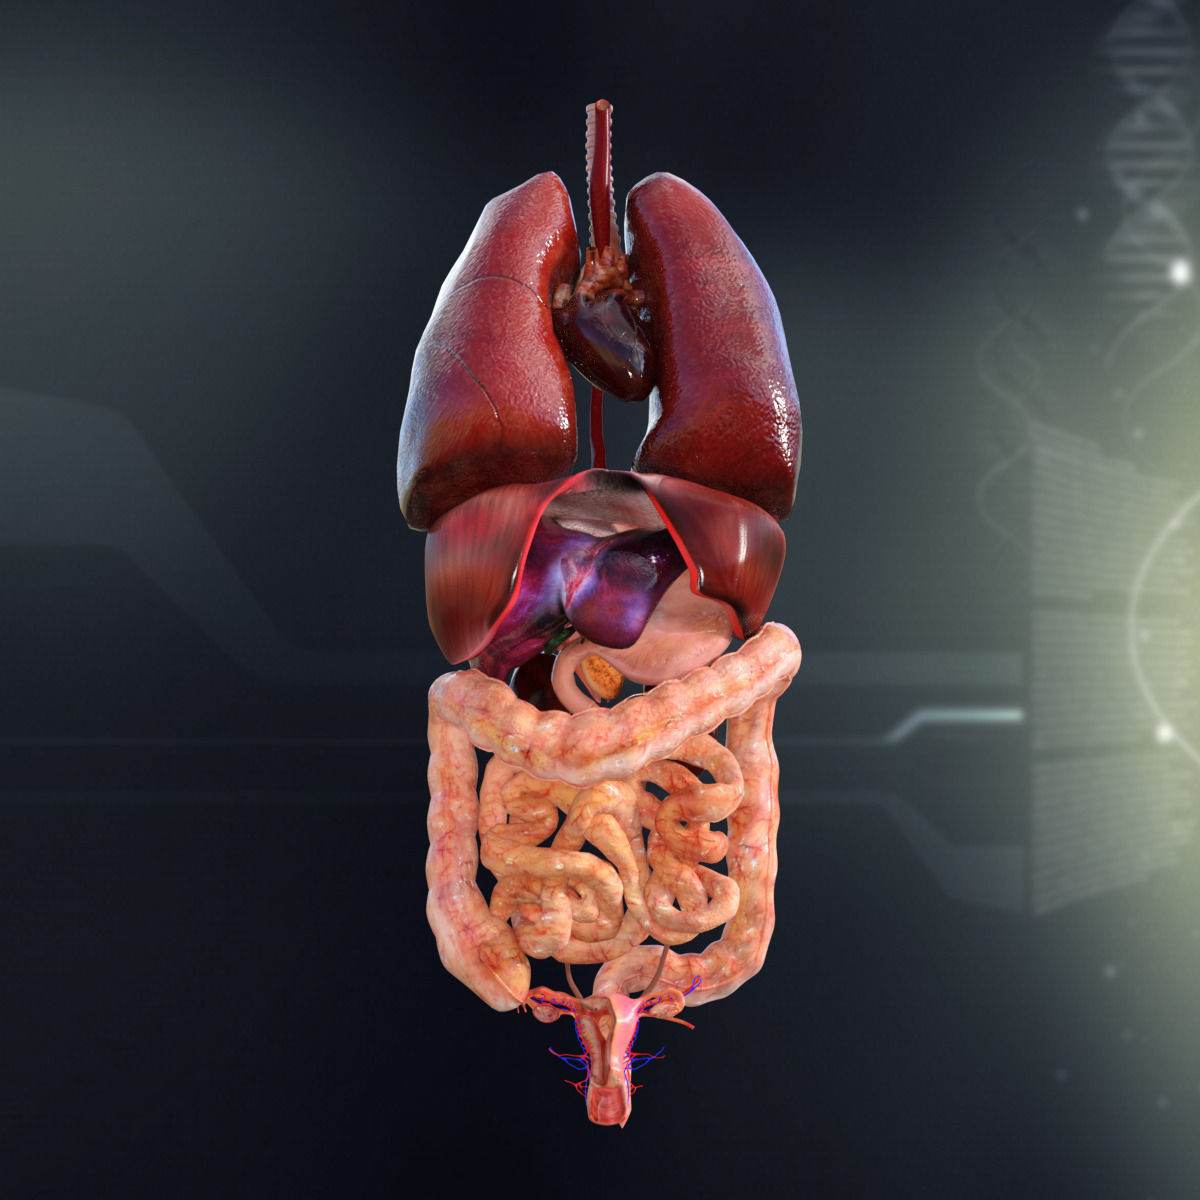 Human Female Internal Organs Anatomy 3d Cgtrader